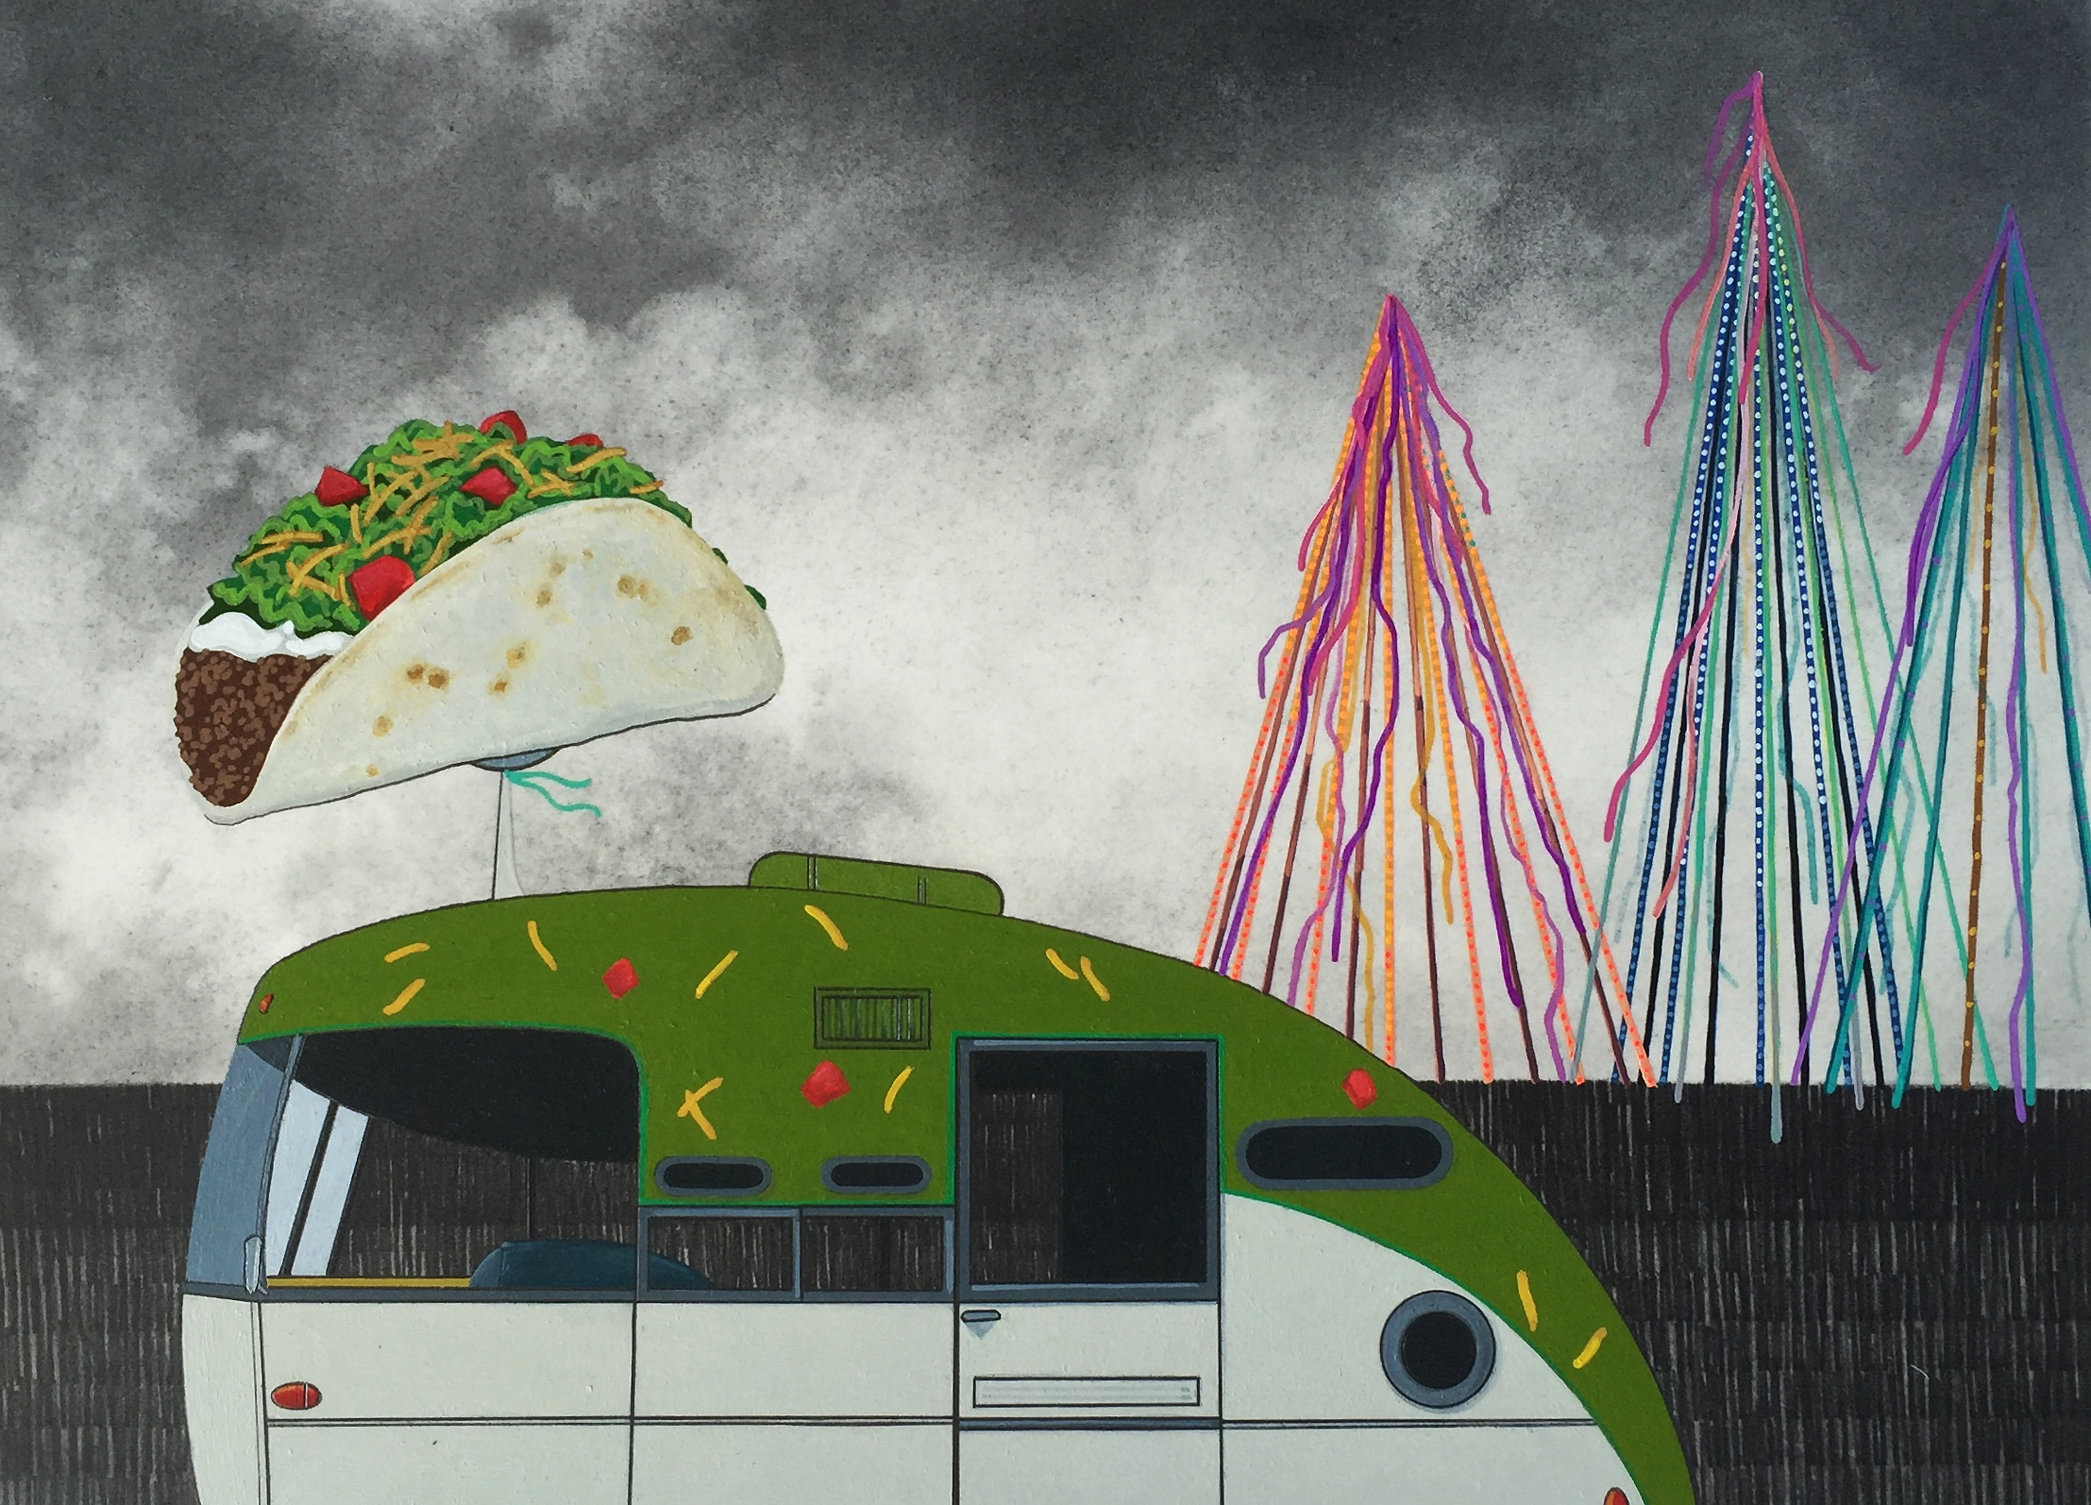 Soft Taco Truck, 2016, graphite and gouache on paper, 9 x 12""